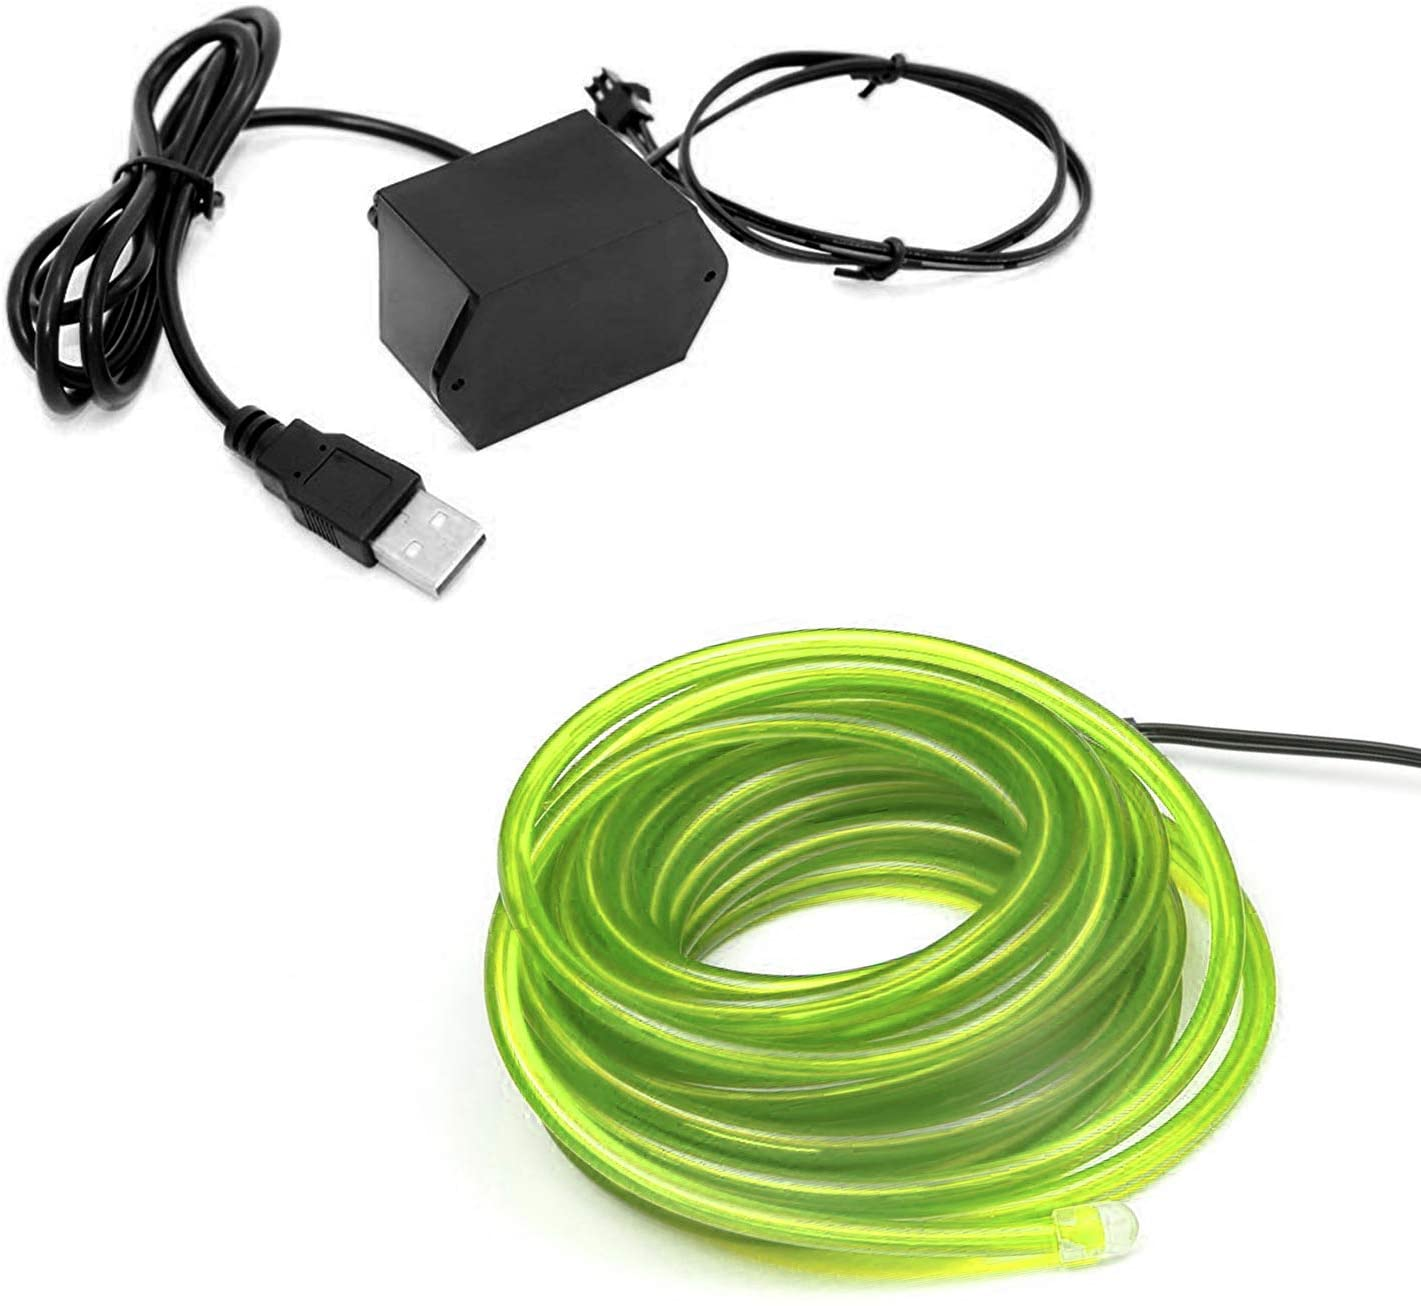 10m/32.8ft Large 2.3 mm Thick - Lime Green Neon LED Light Glow EL Wire - Powered by USB Port - Craft Neon Wire String Light for DIY Project Costume Accessories Cosplay